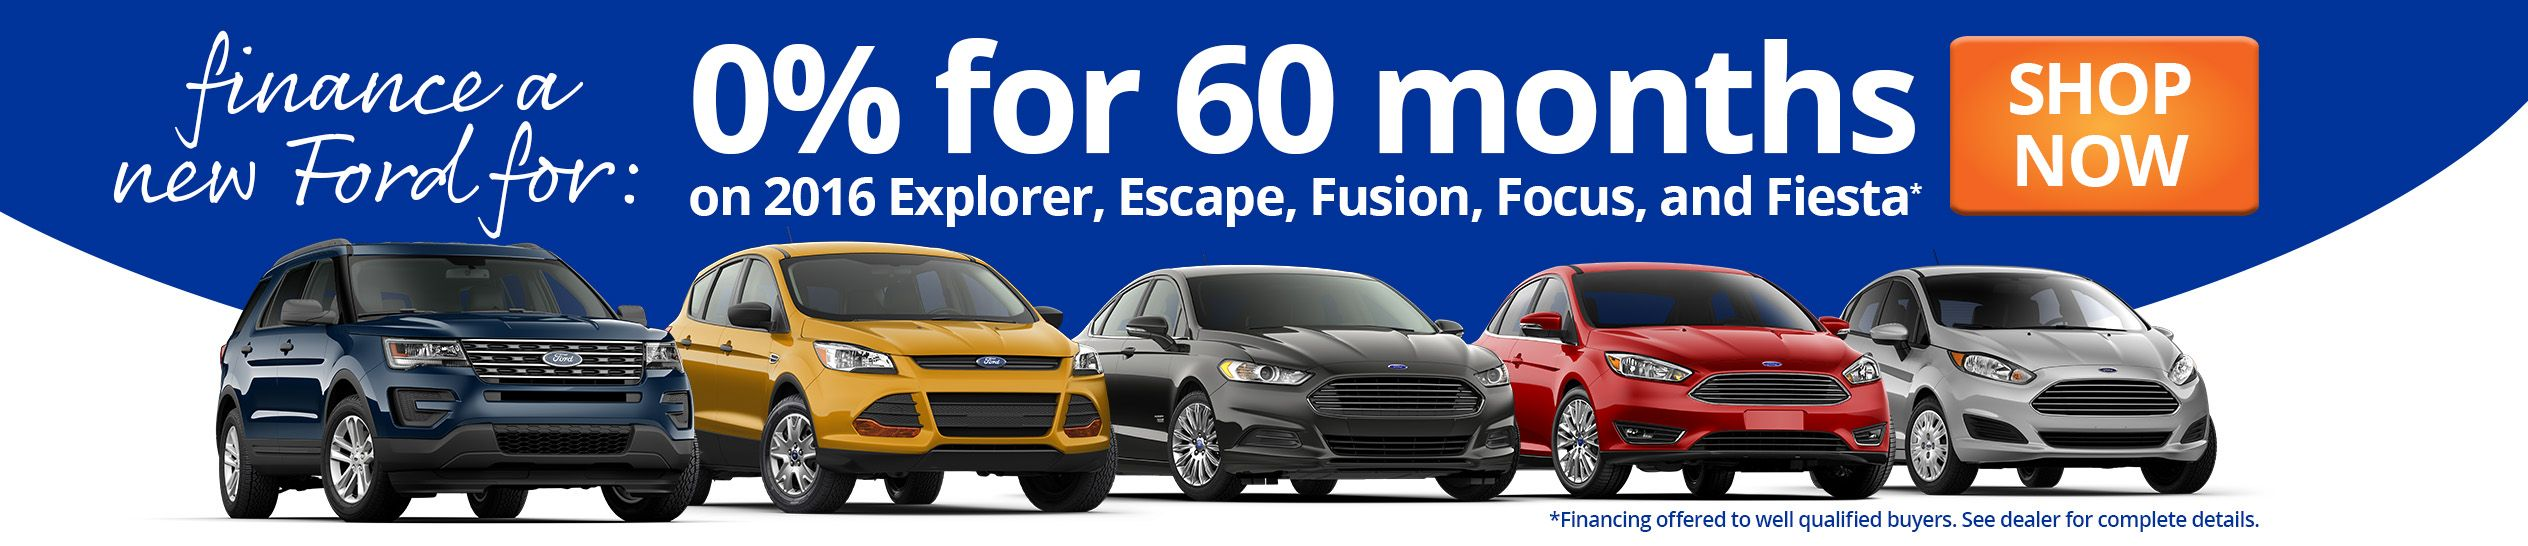 Fox Ford Lincoln Auto Specials Near Chicago Car Dealership Ford